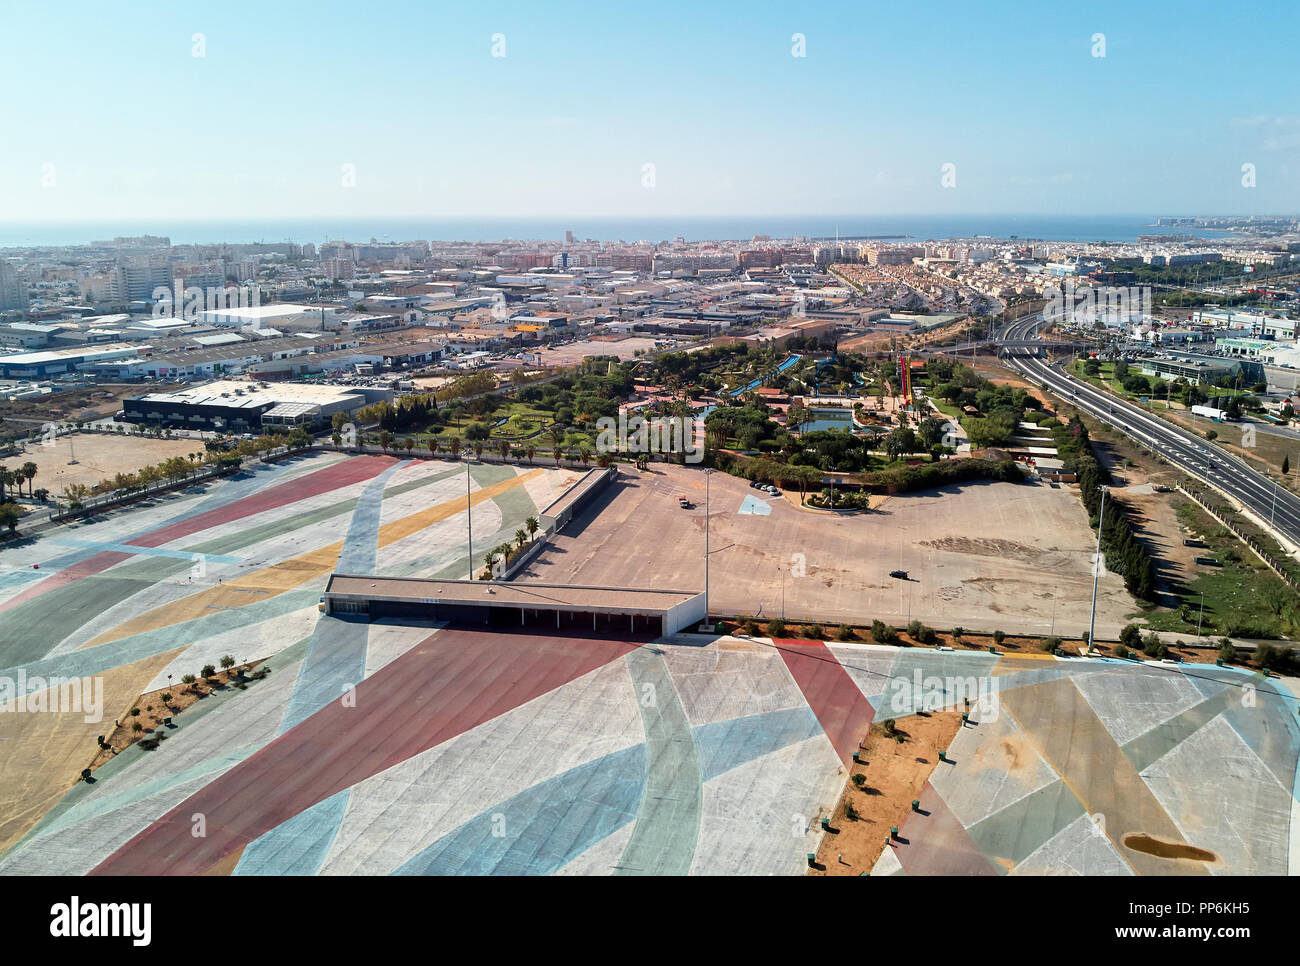 Aerial photography Torrevieja townscape. Above view of empty market parking area, square for transport. Costa Blanca, Spain - Stock Image